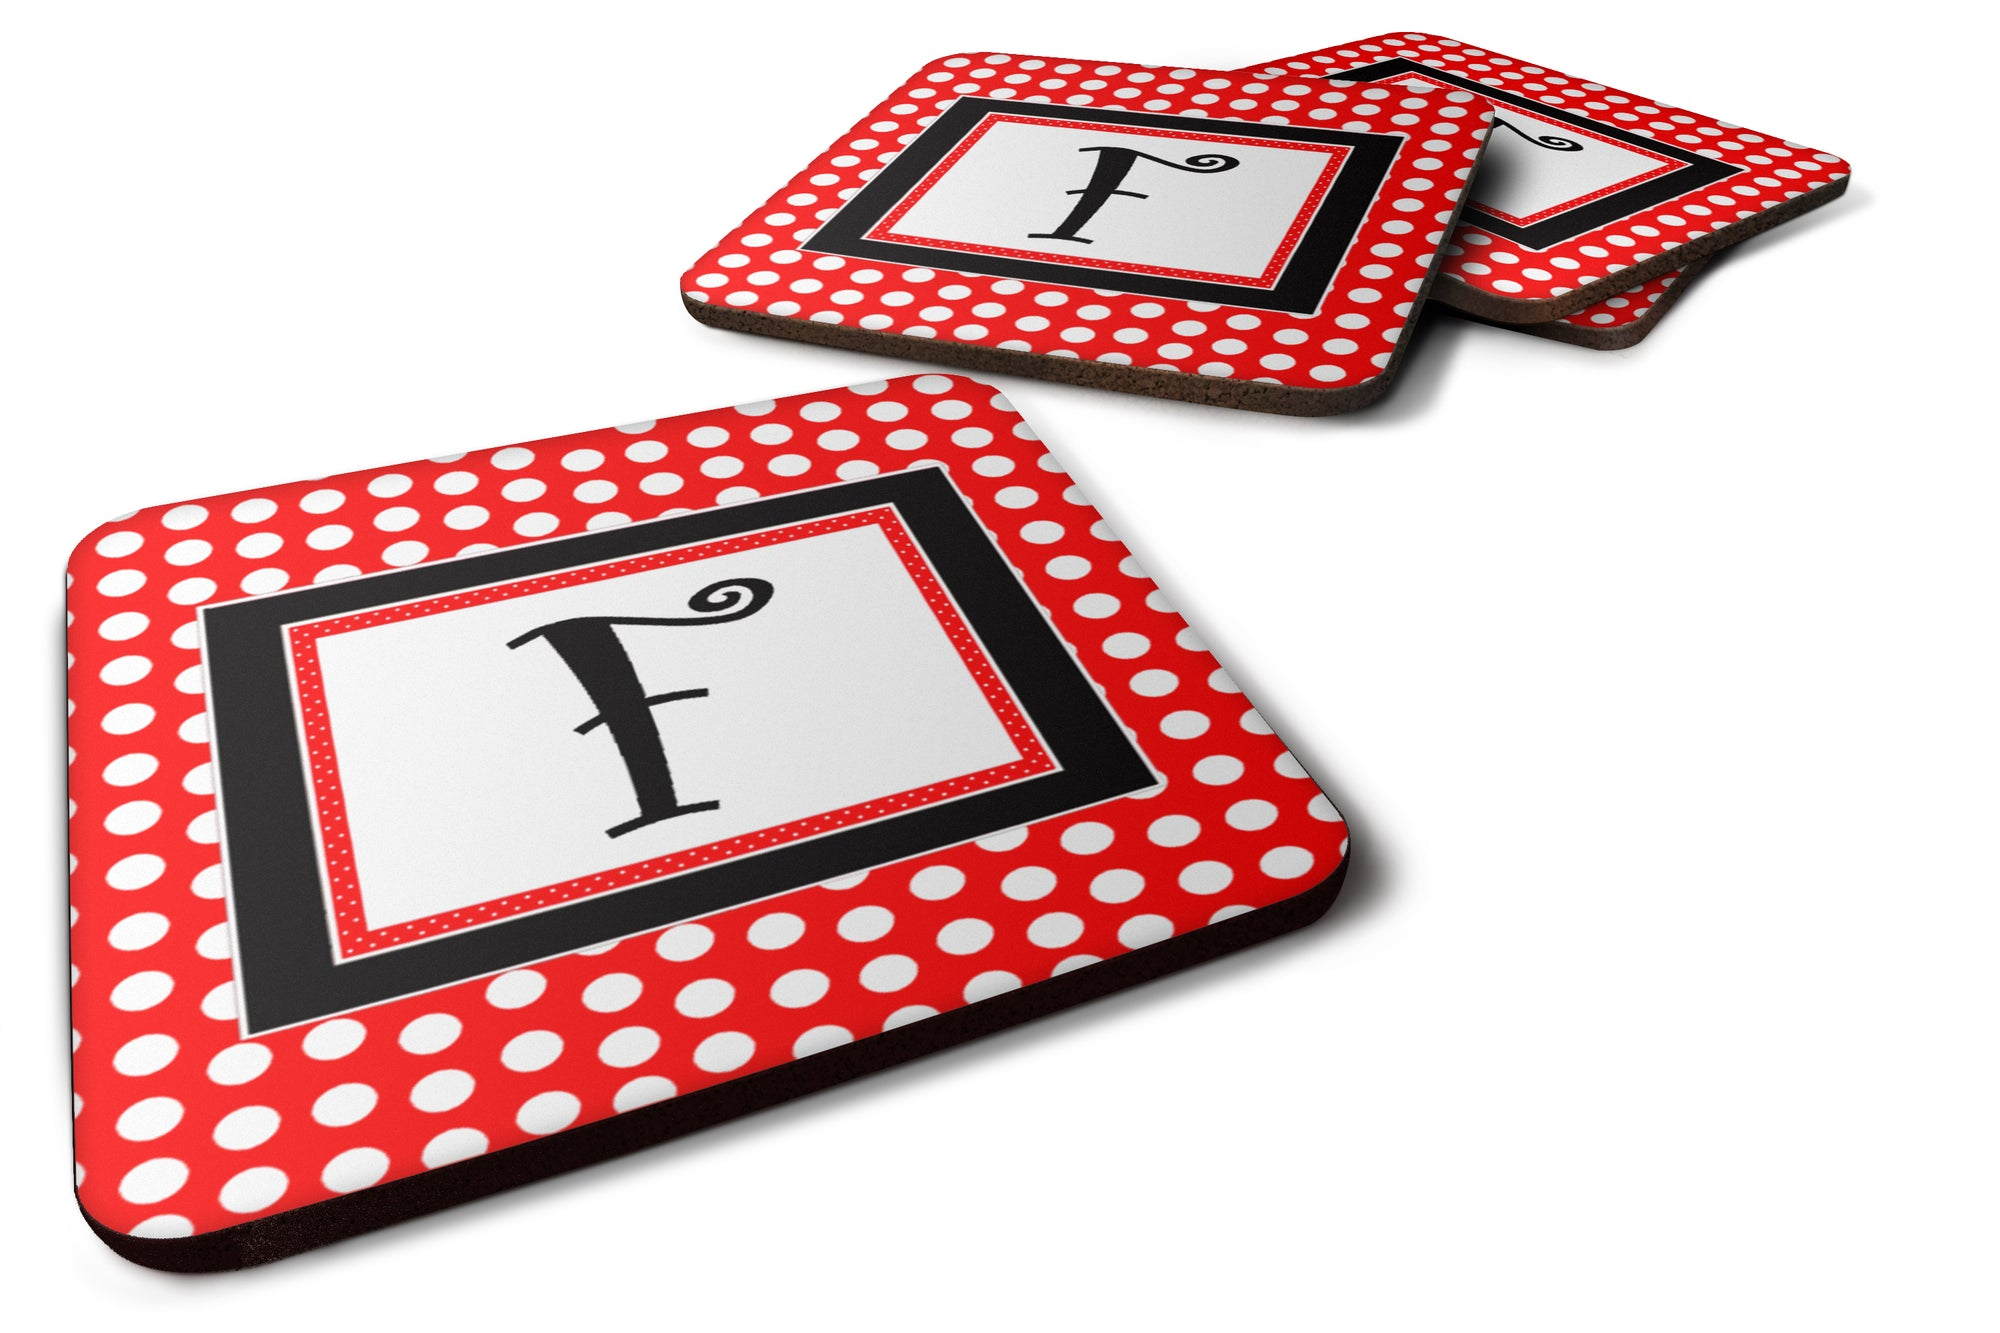 Set of 4 Monogram - Red Black Polka Dots Foam Coasters Initial Letter F by Caroline's Treasures